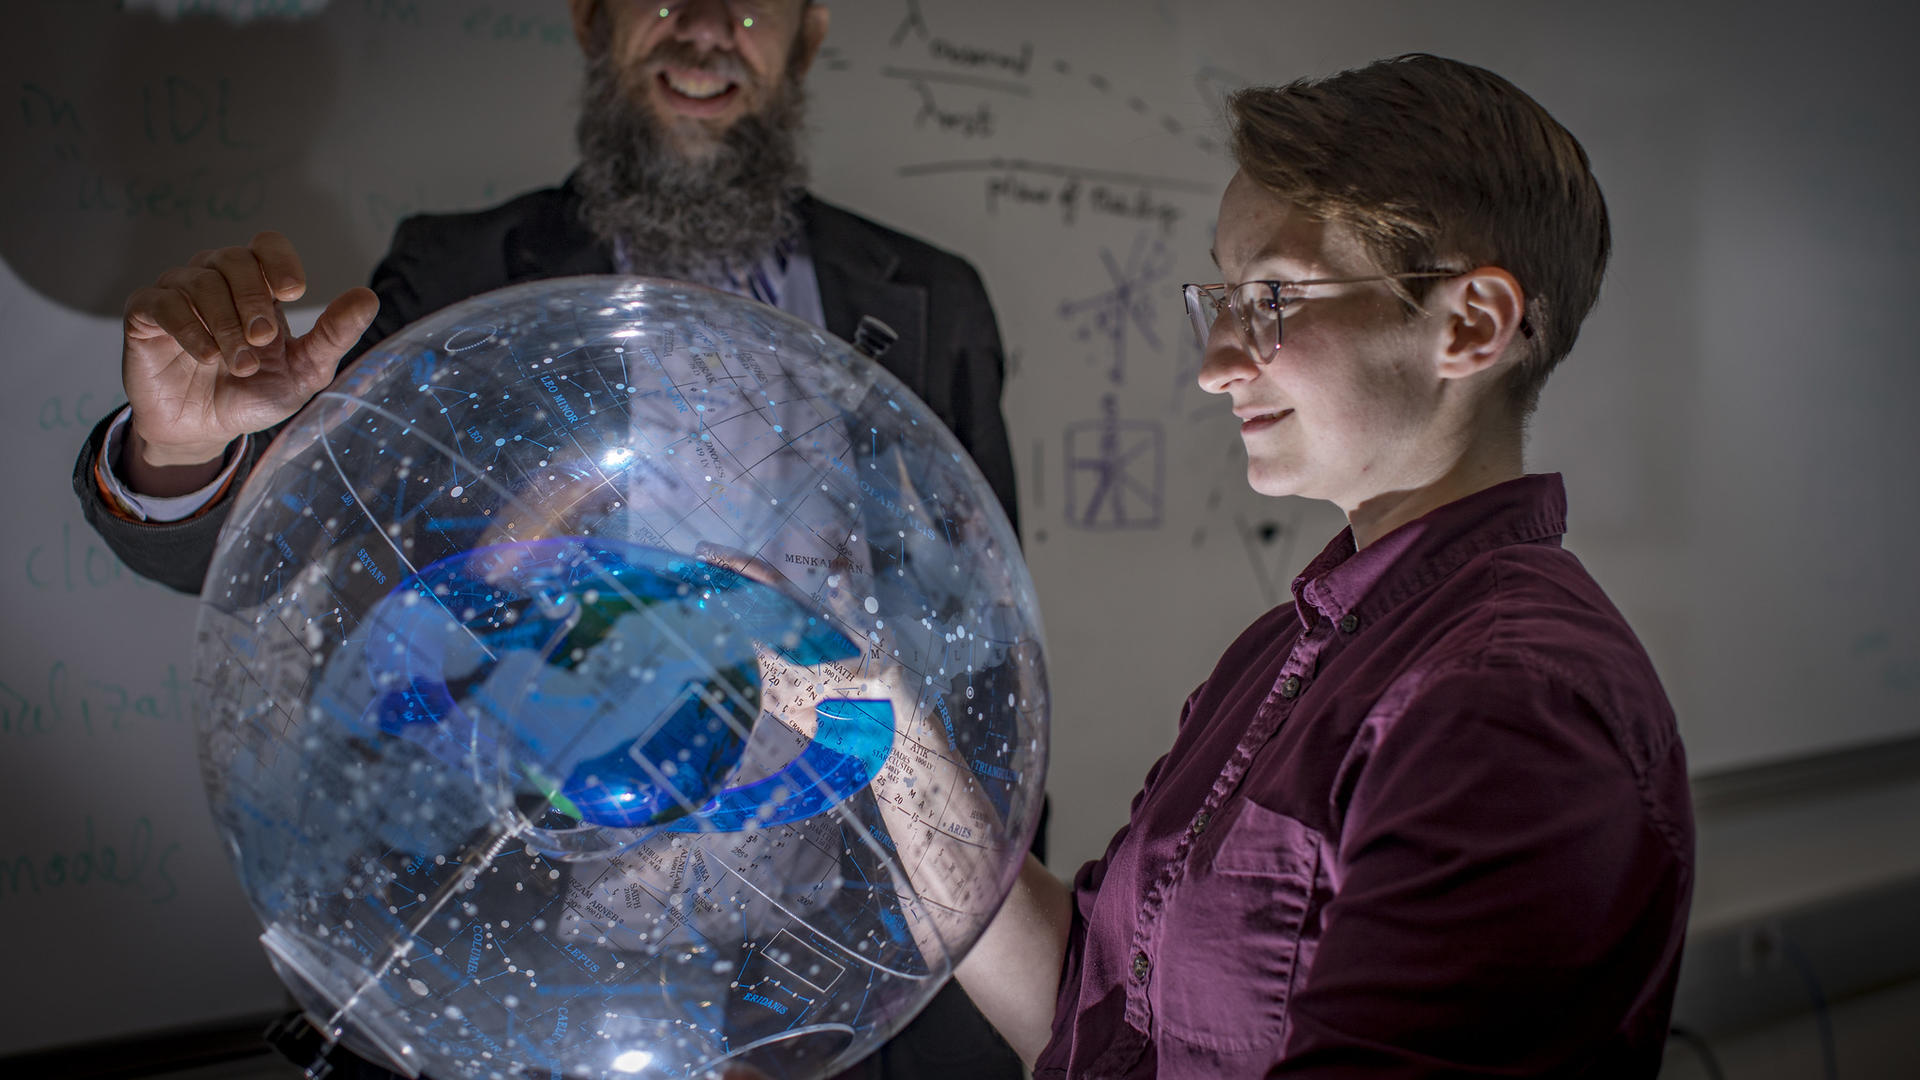 A professor and student look through a model of the galaxy